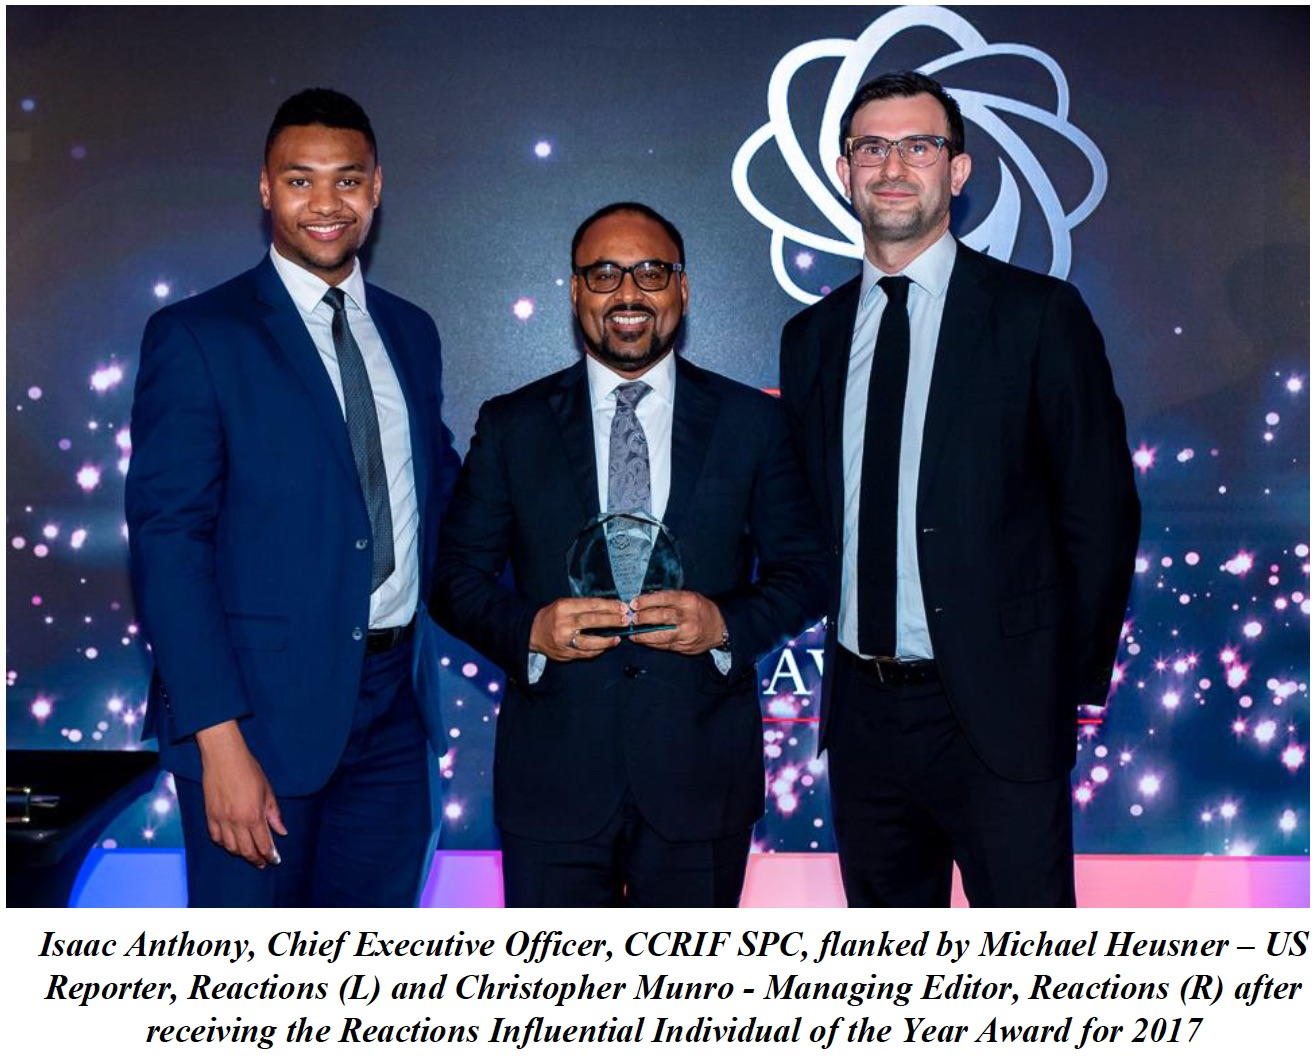 CCRIF CEO Isaac Anthony Receives Reactions Influential Individual of the Year Award 2017